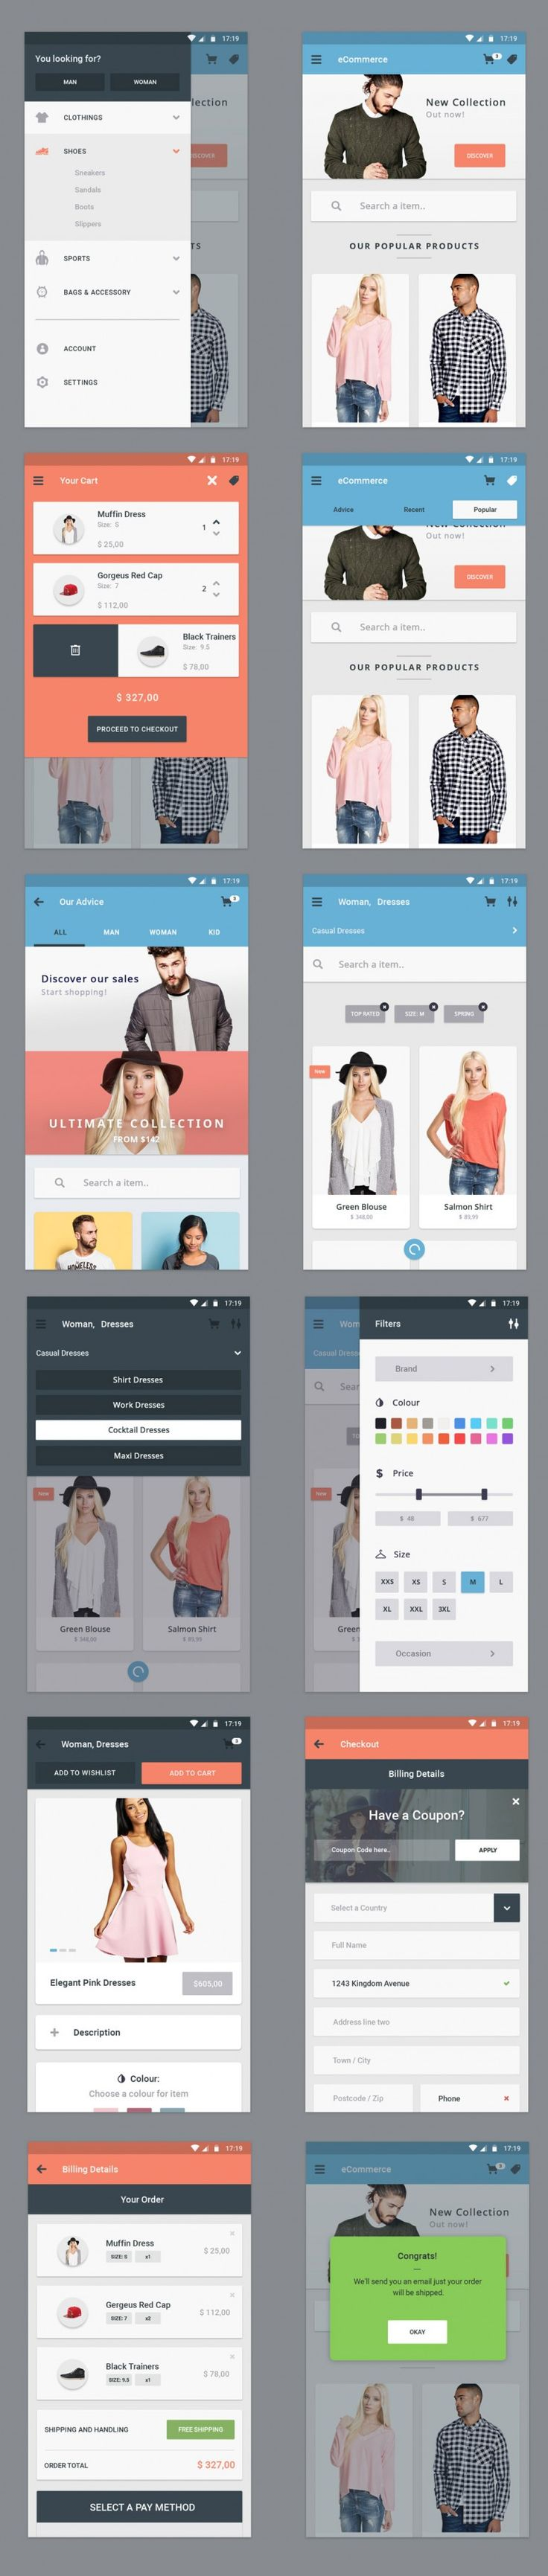 Free Ecommerce App UI Designs on